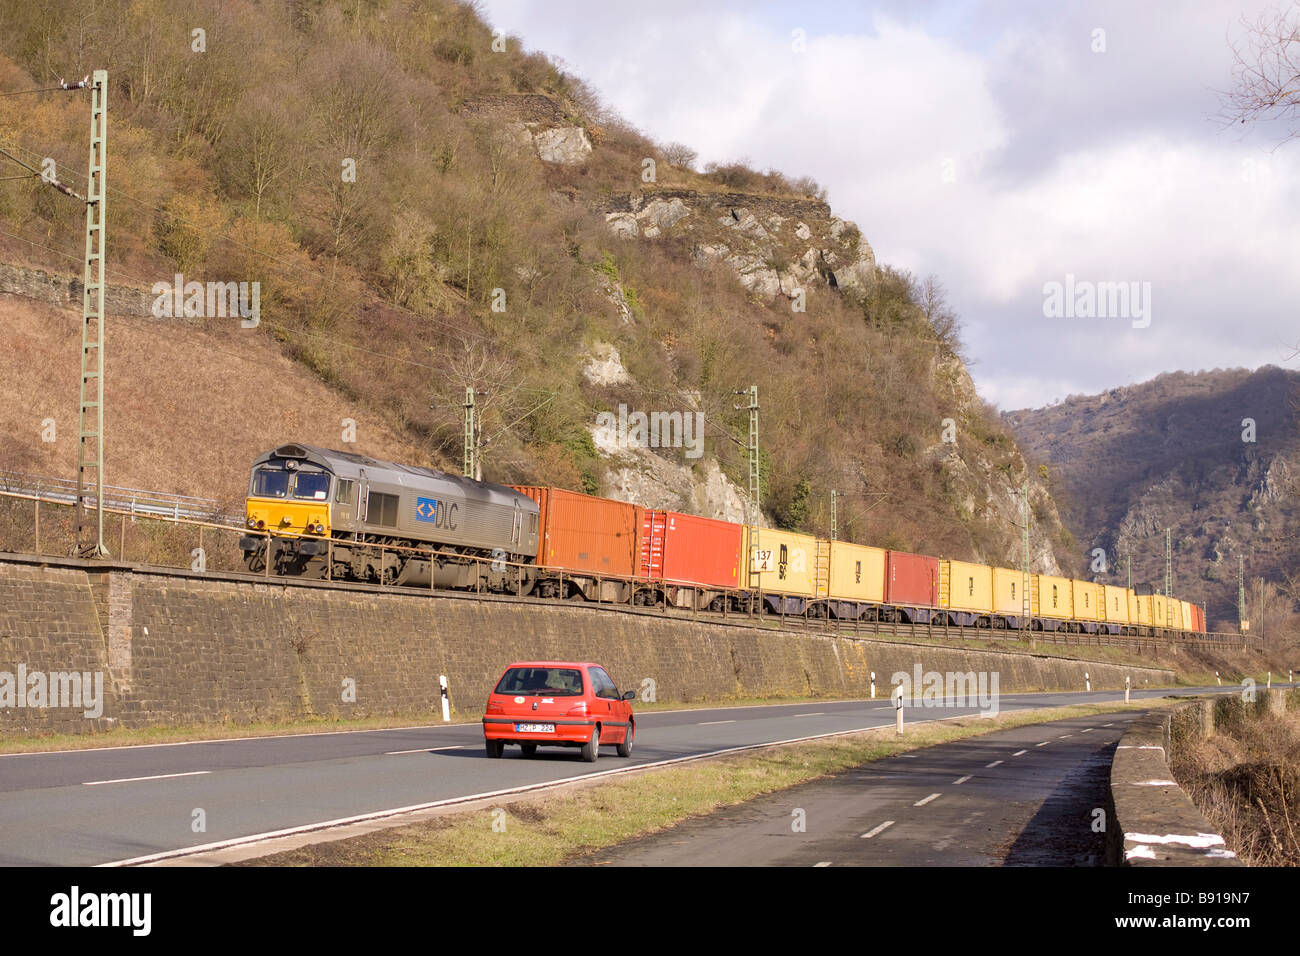 DLC class 66 PB15 with an intermodal freight train near Bacharach - Stock Image